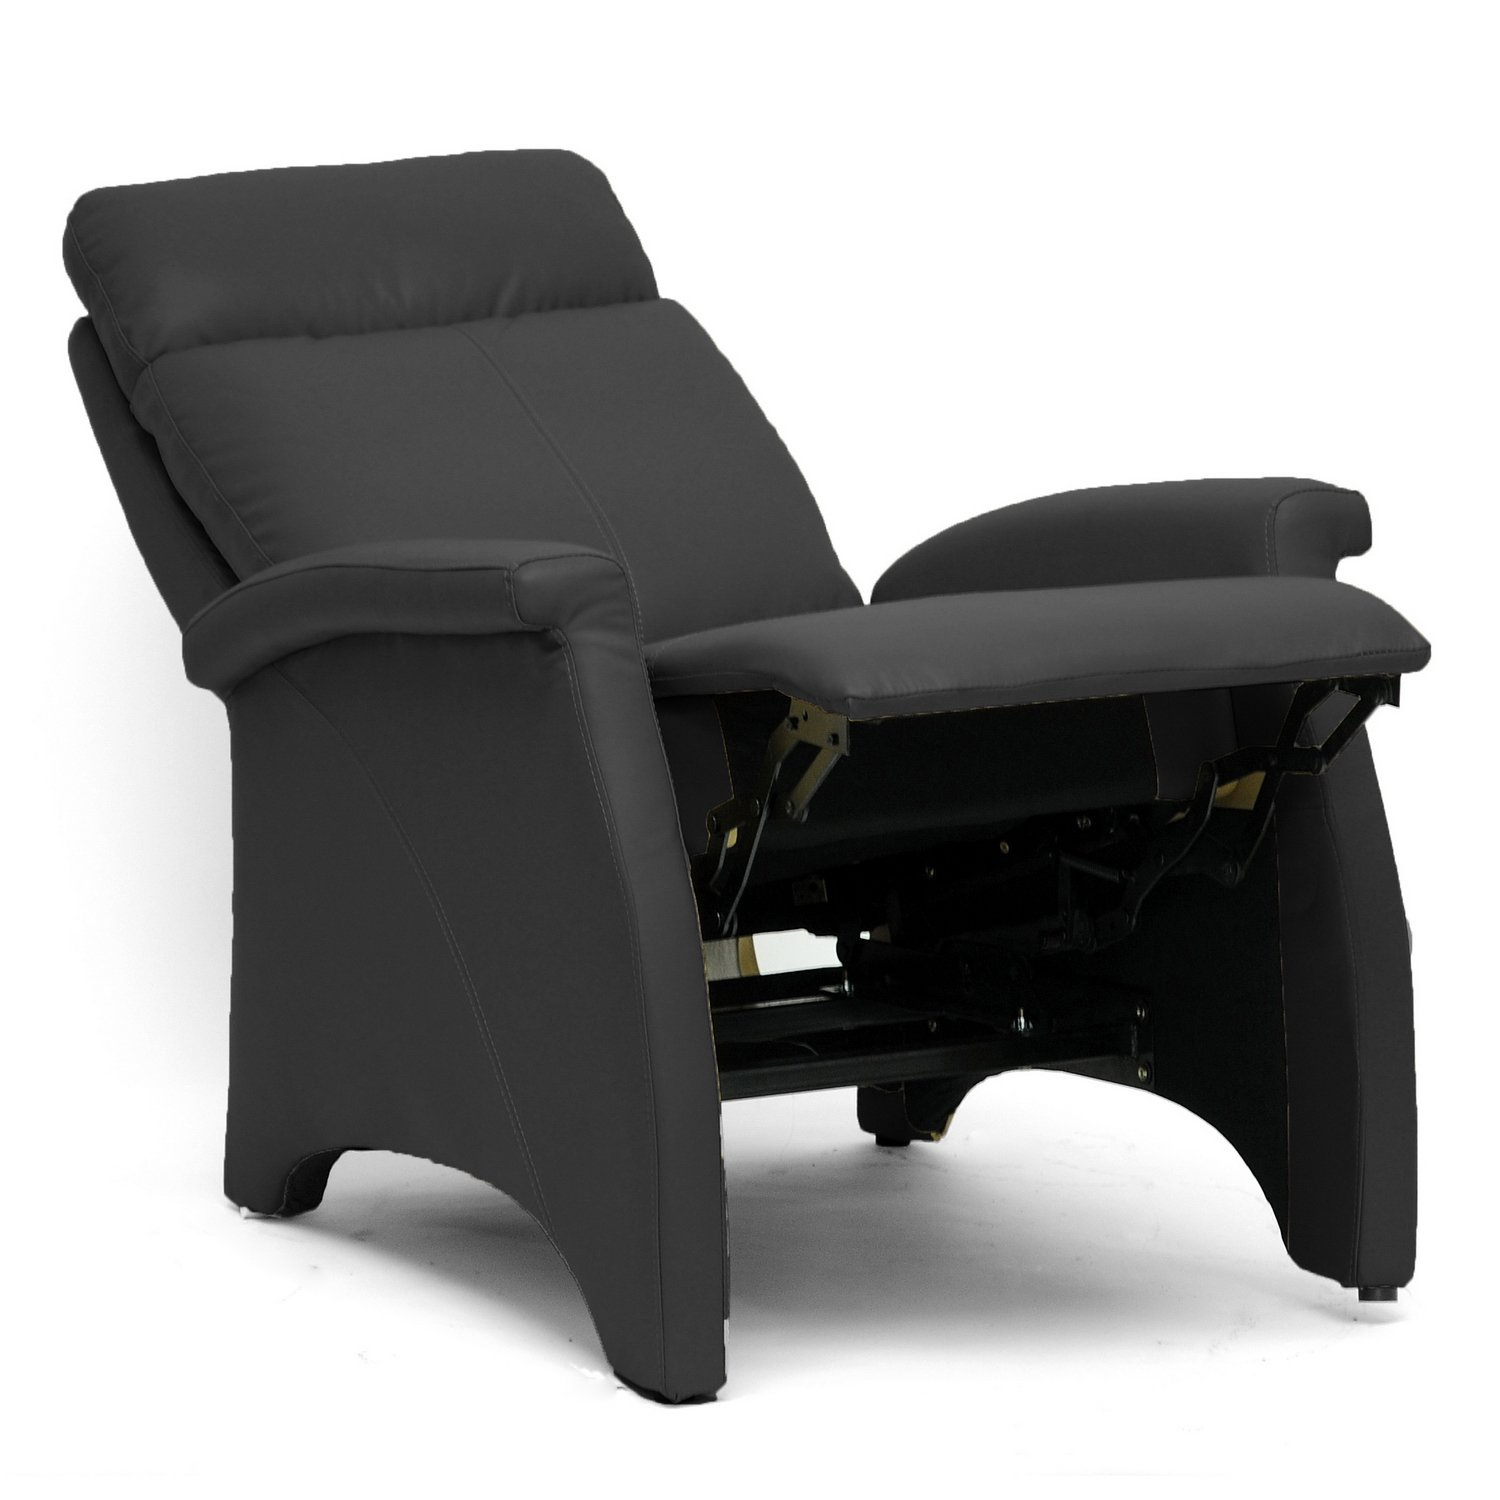 amazoncom baxton studio sequim modern recliner club chair black kitchen u0026 dining